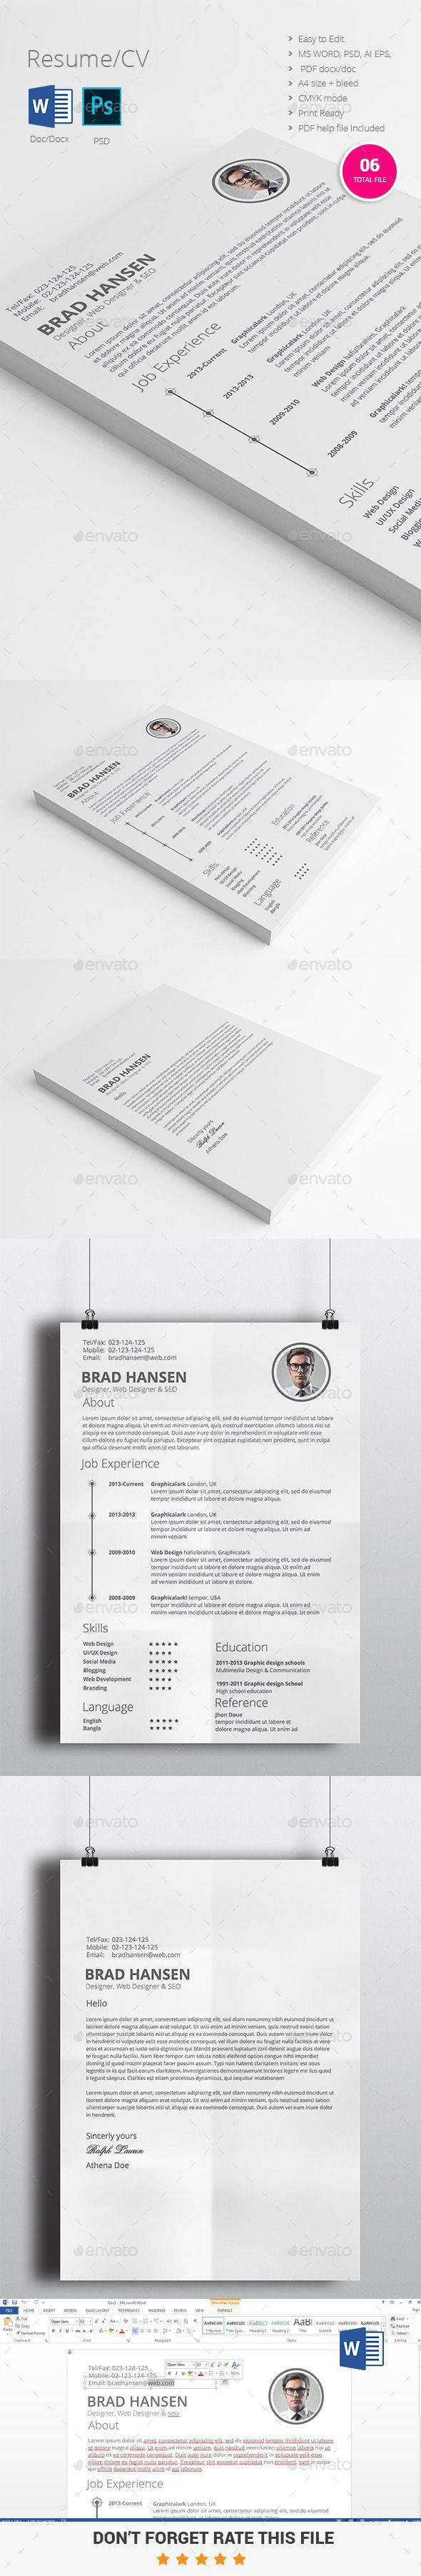 13 Best Cv Resume Images On Pinterest